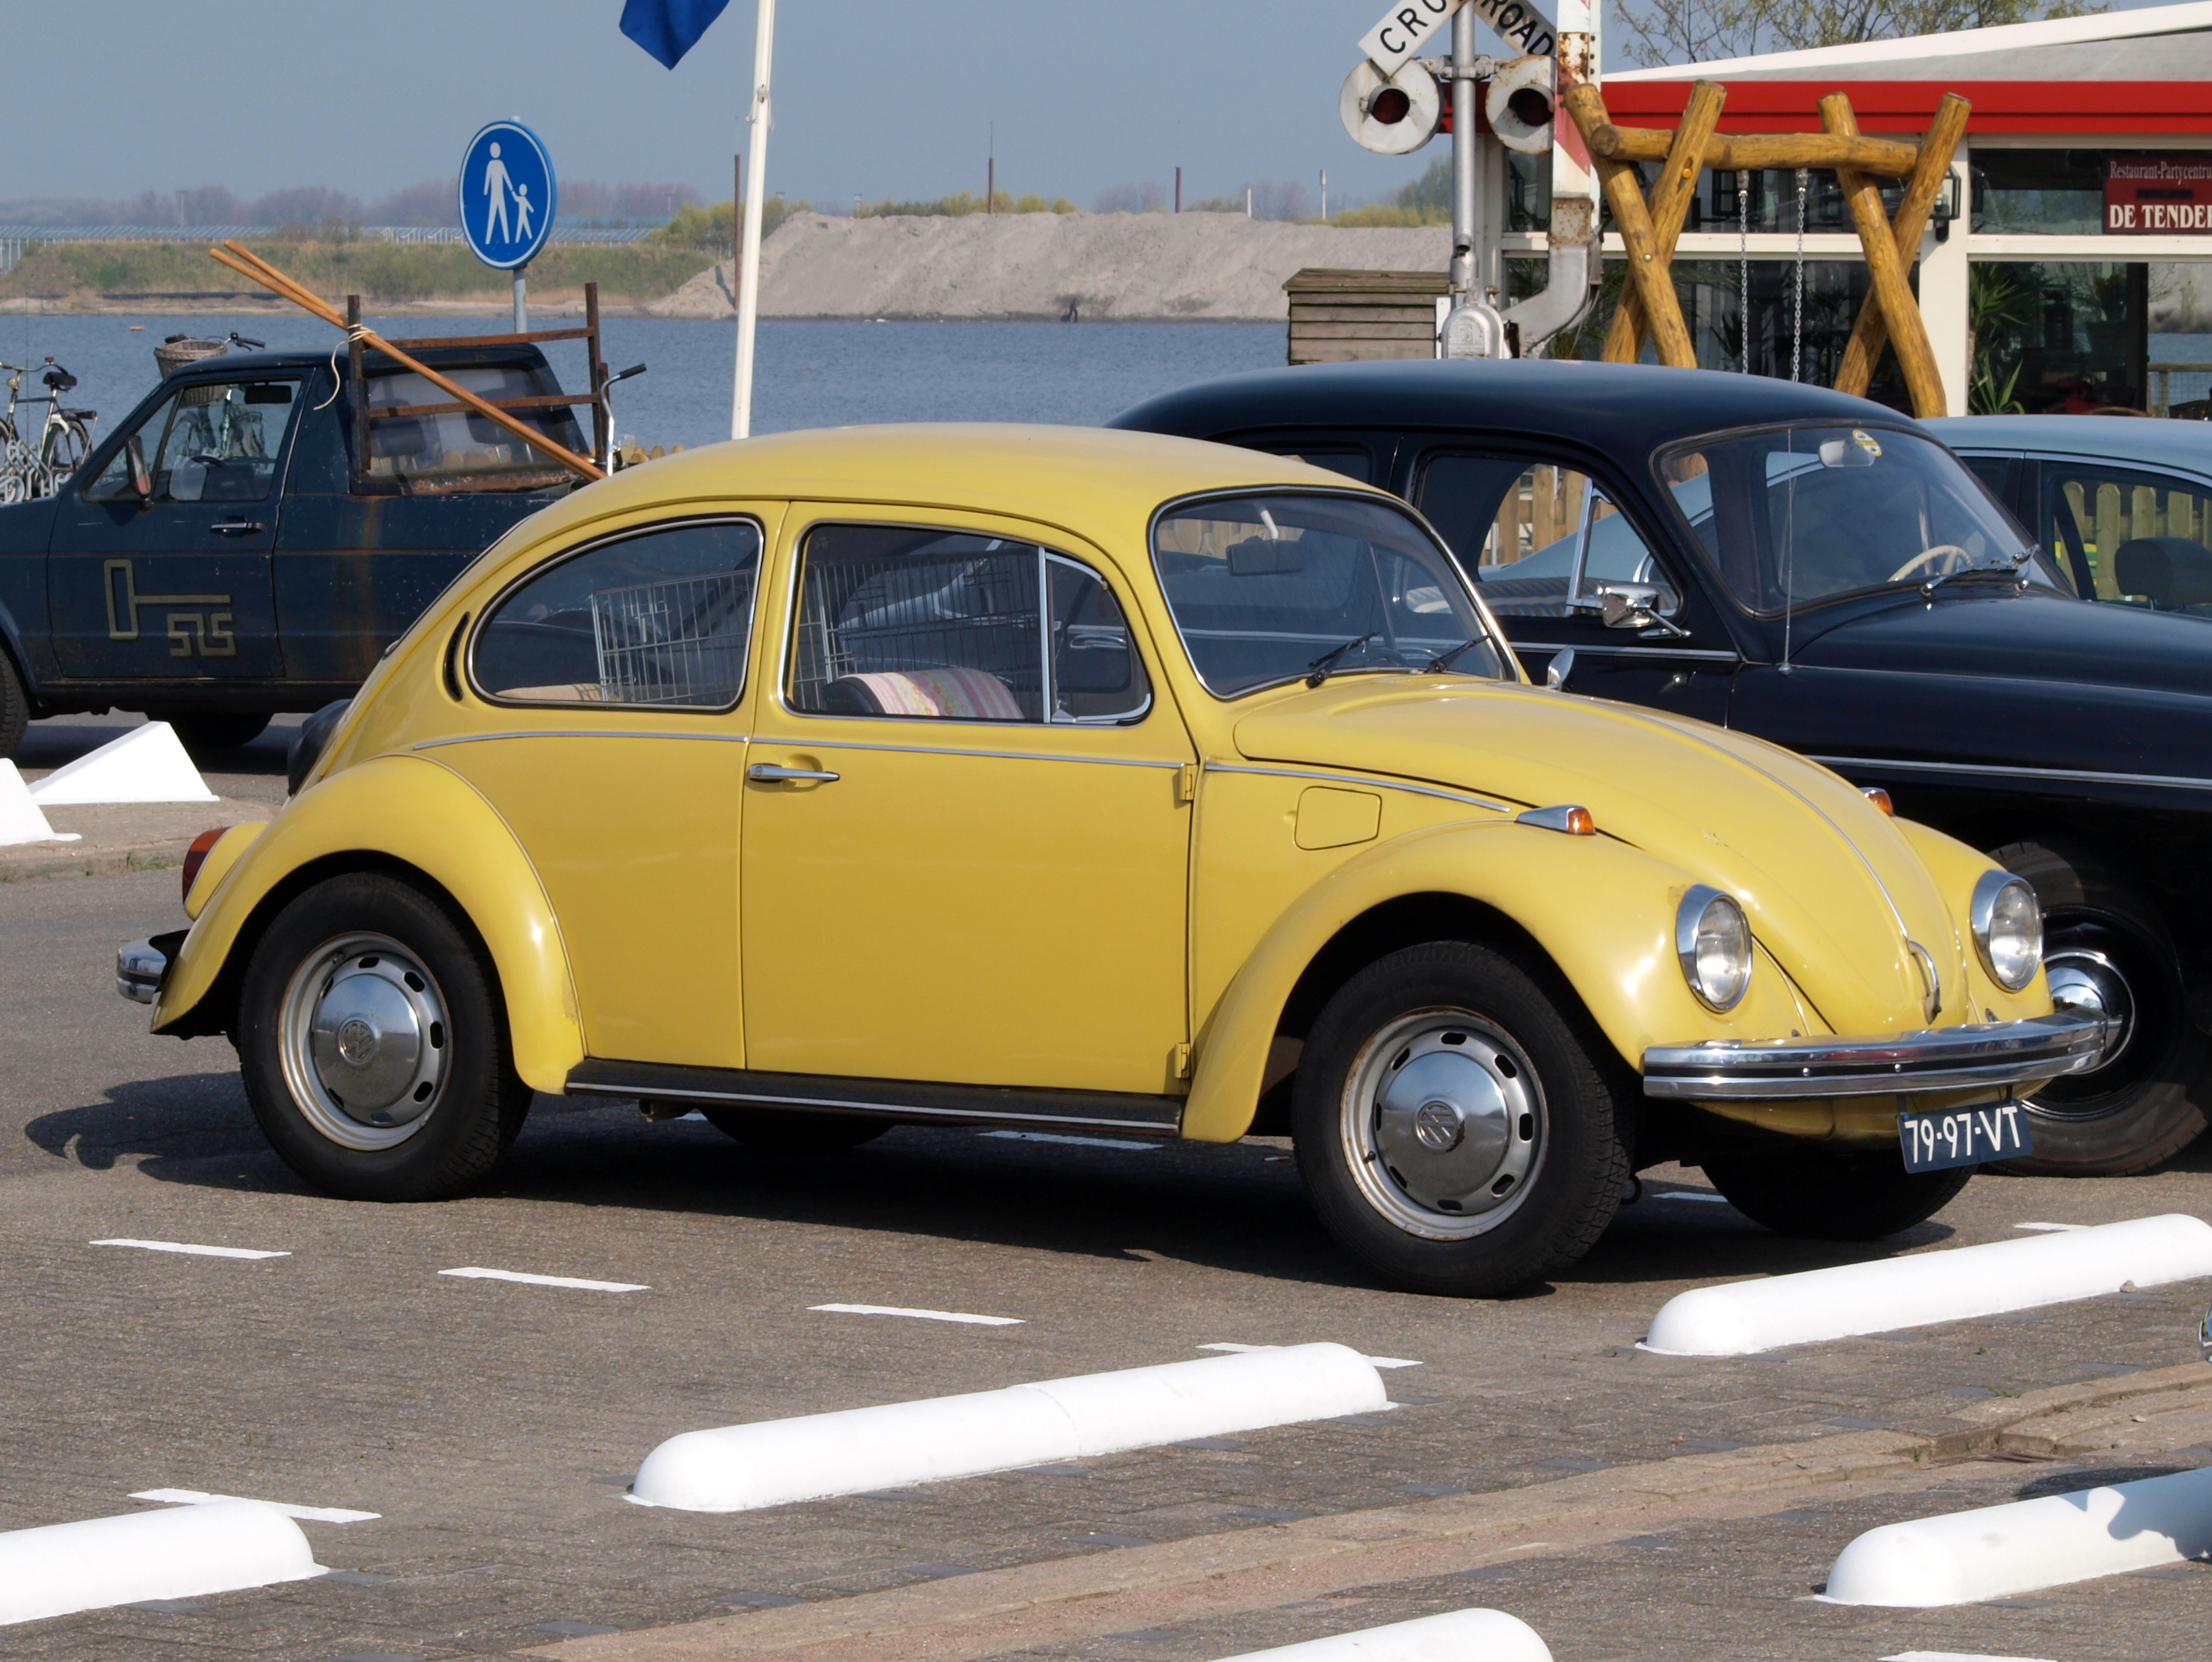 172068670058 together with 1970 Vw Beetle Quotes besides 111625426583 additionally Viewtopic moreover Watch. on 1973 vw bug